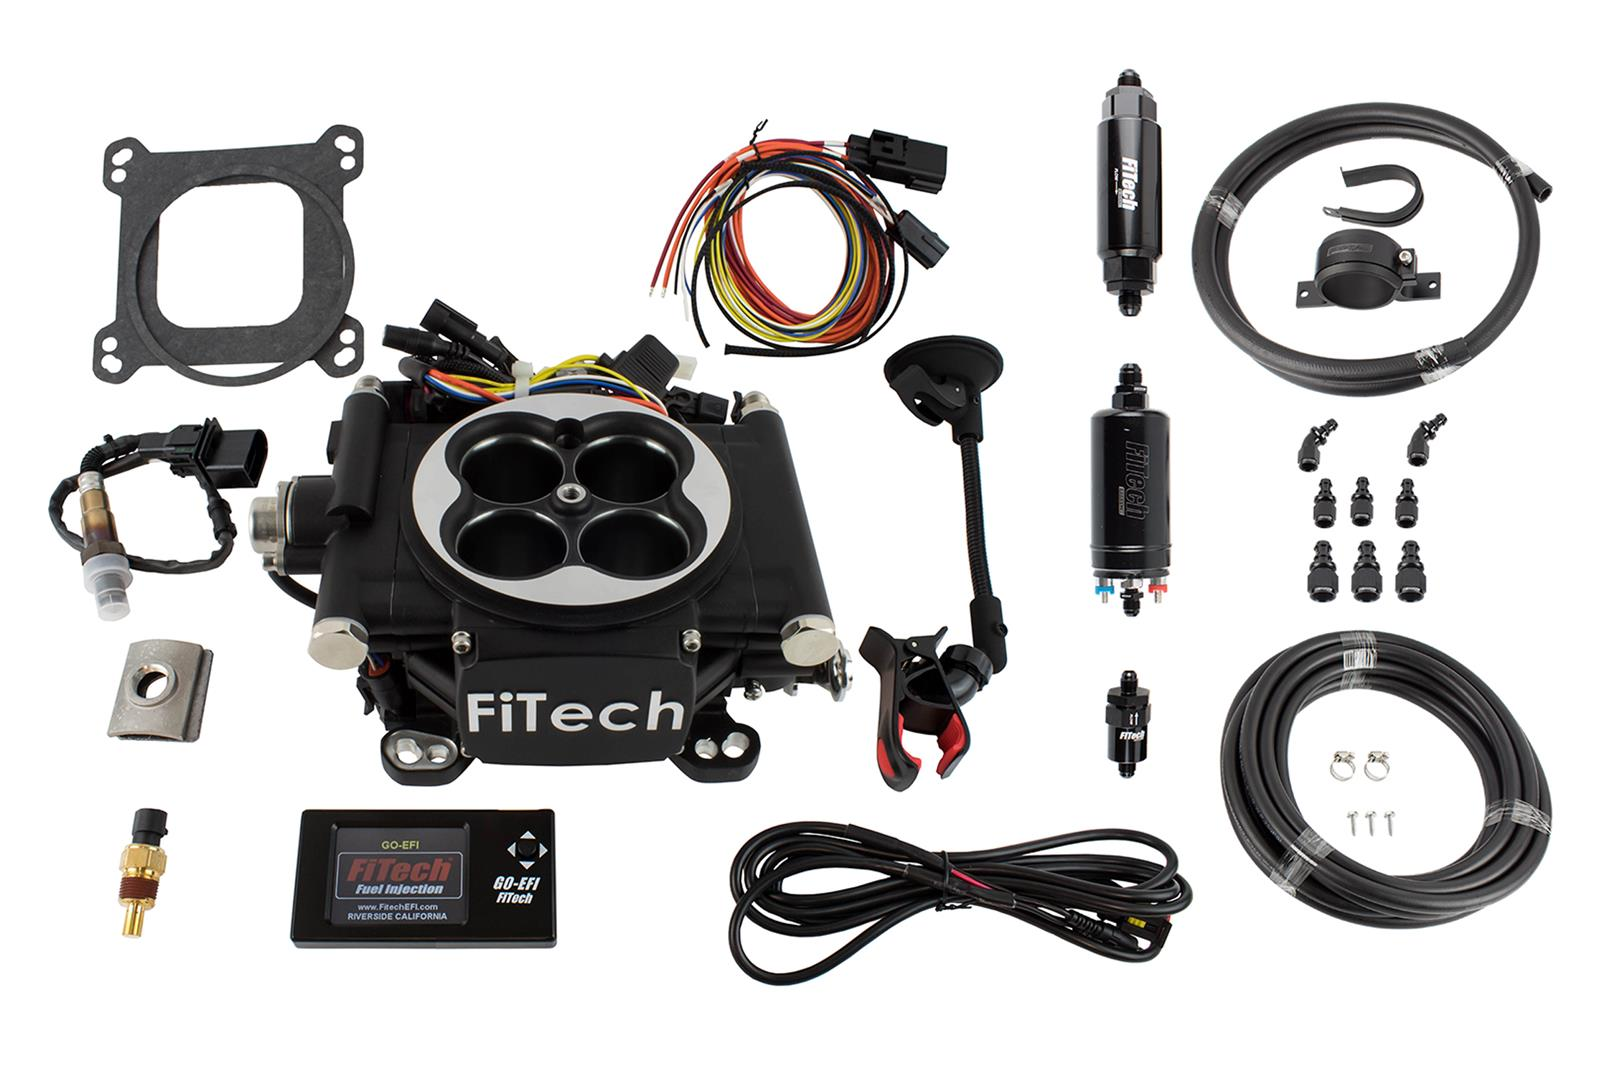 Fitech Go Efi 4 600 Hp Self Tuning Fuel Injection Systems 31002 Ignition Circuit Diagram For The 1949 54 Nash All Models Free Shipping On Orders Over 99 At Summit Racing